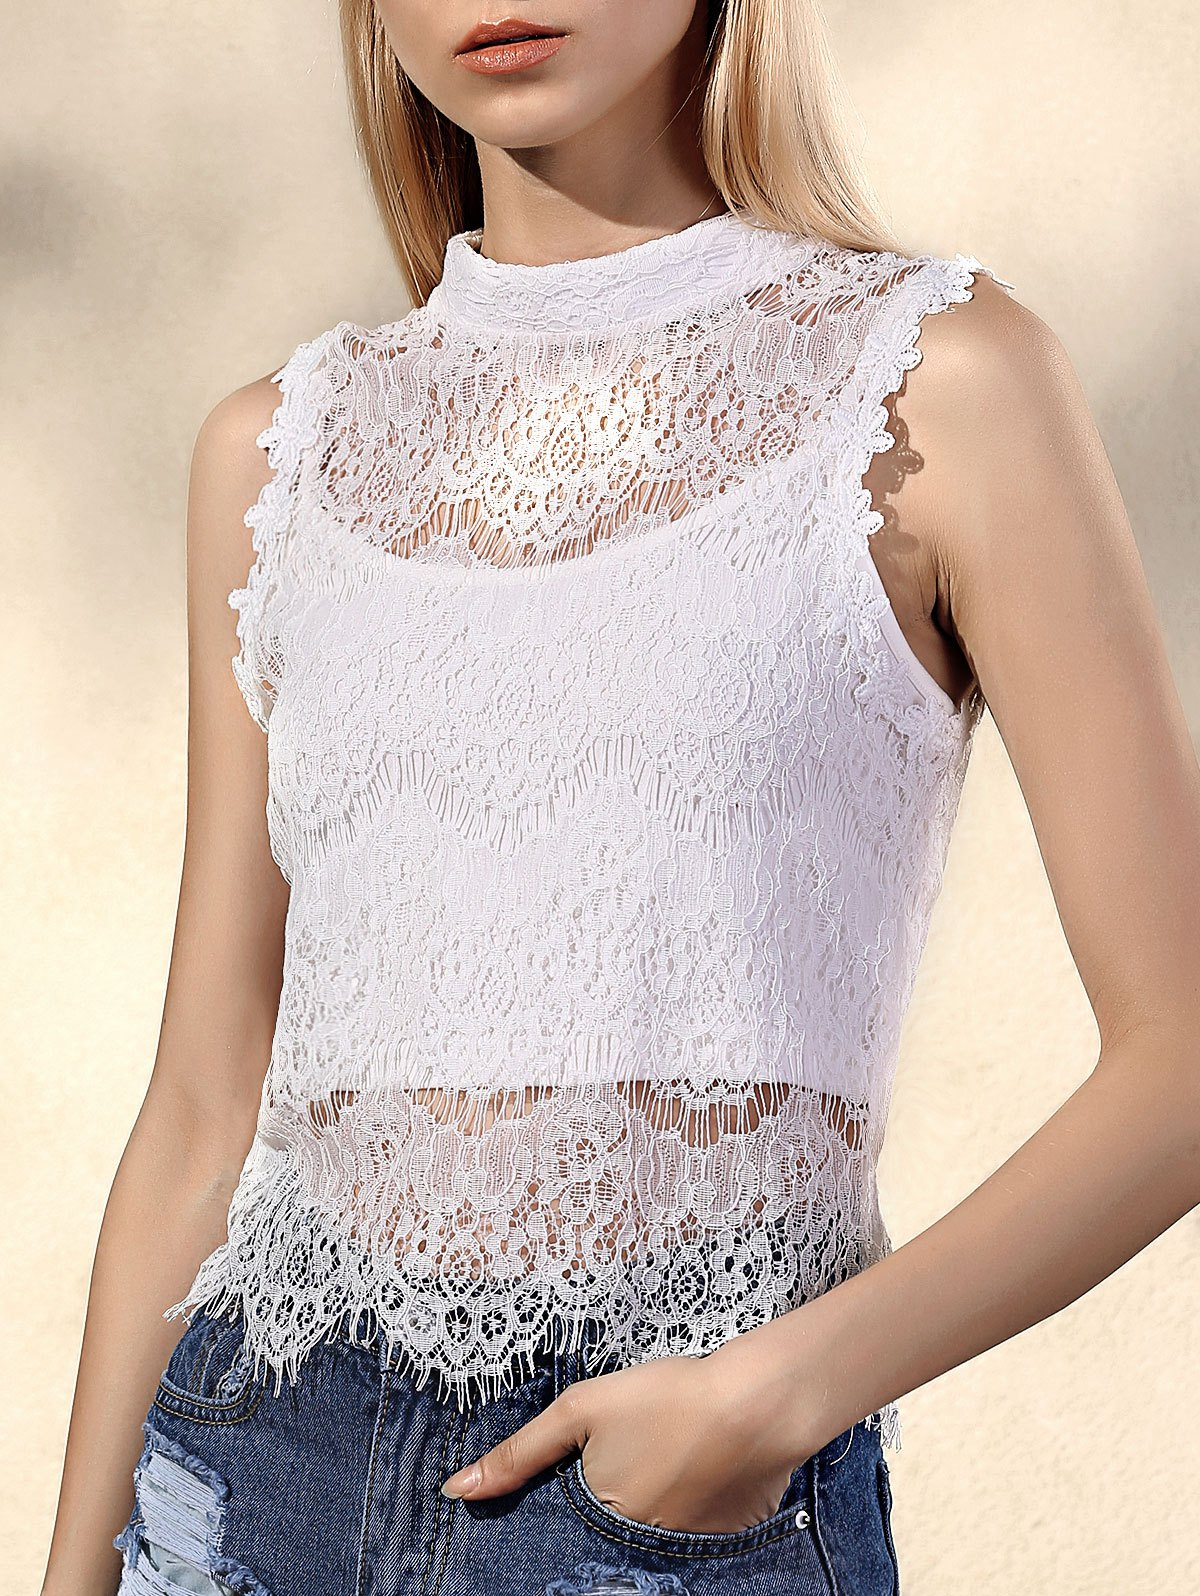 Scalloped Lace Tank TopClothes<br><br><br>Size: M<br>Color: WHITE